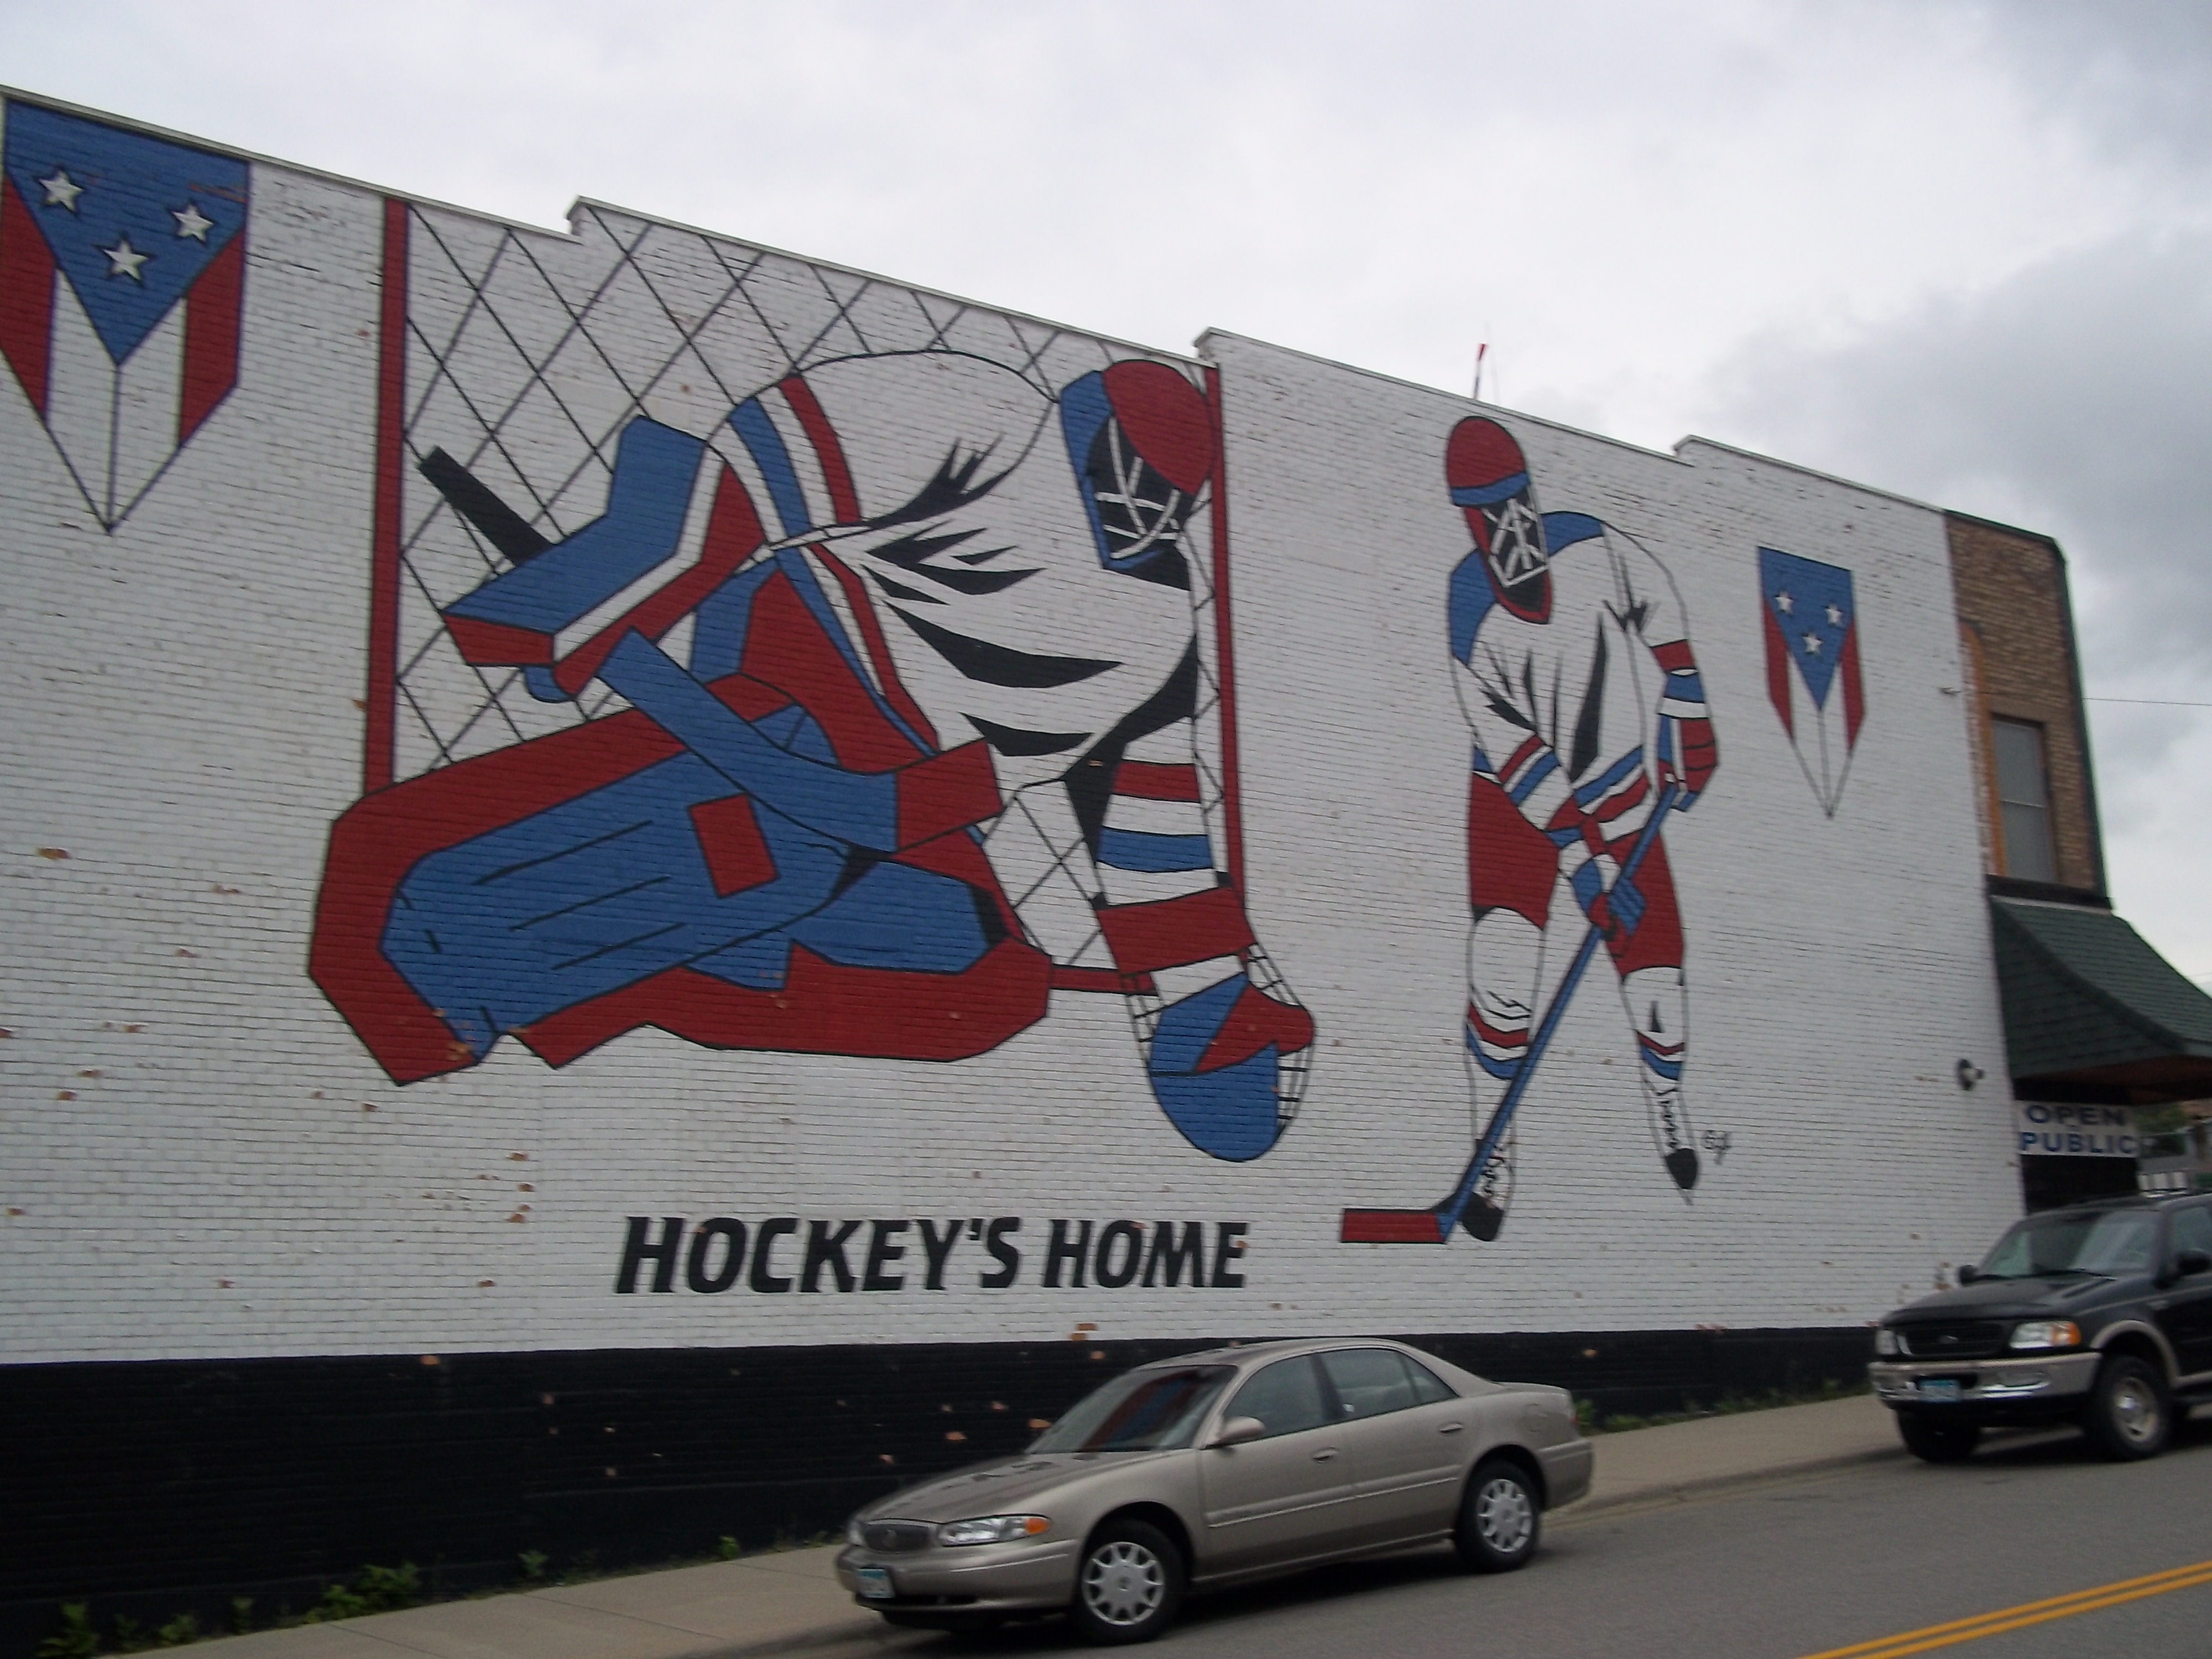 world s largest hockey stick puck eveleth mn also here in eveleth just across the street from the colossal piece of sports equipment is the united states hockey hall of fame